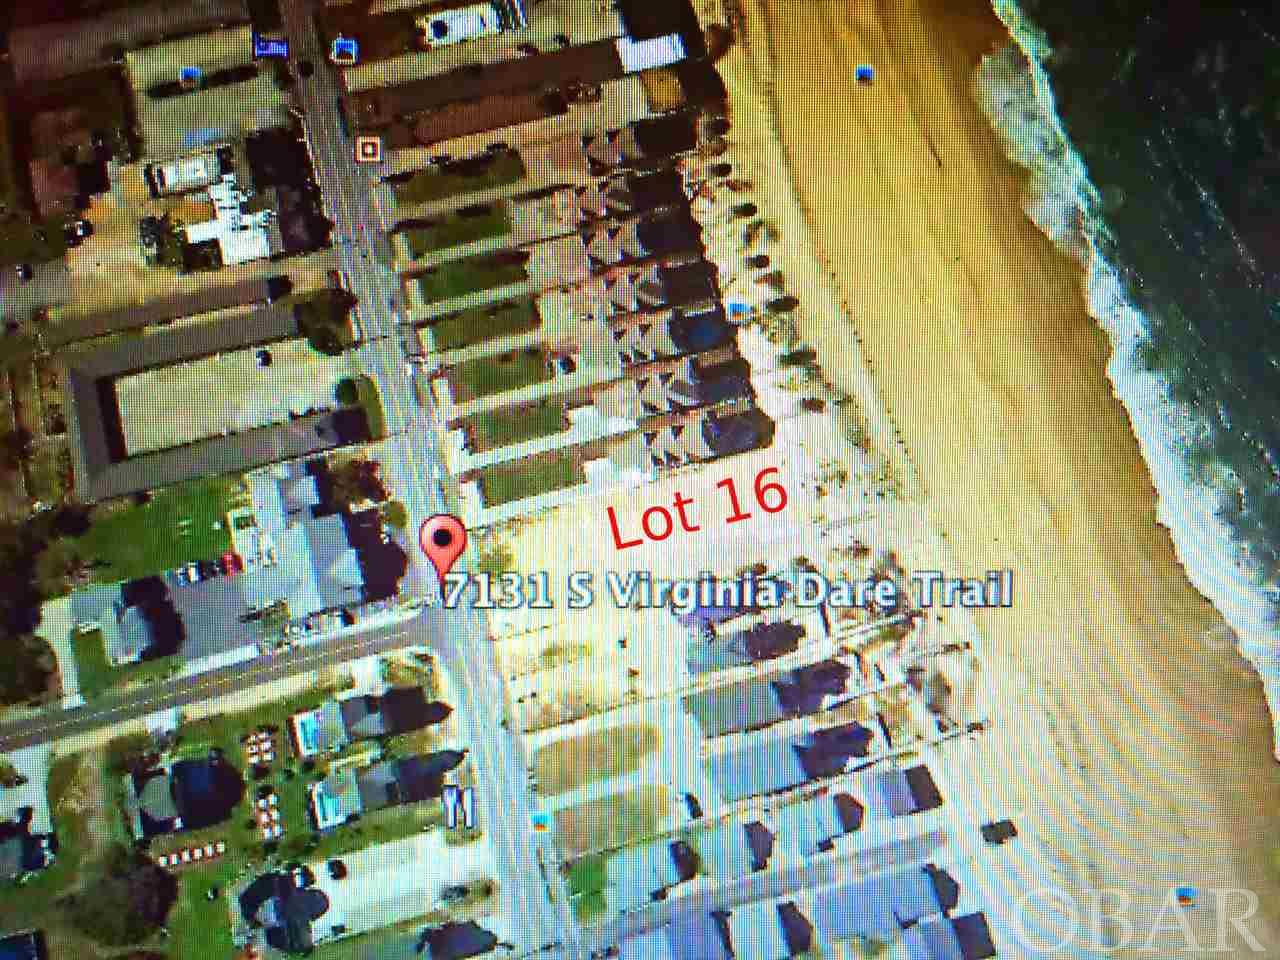 7131 S VIRGINIA DARE TRAIL, NAGS HEAD, NC 27959